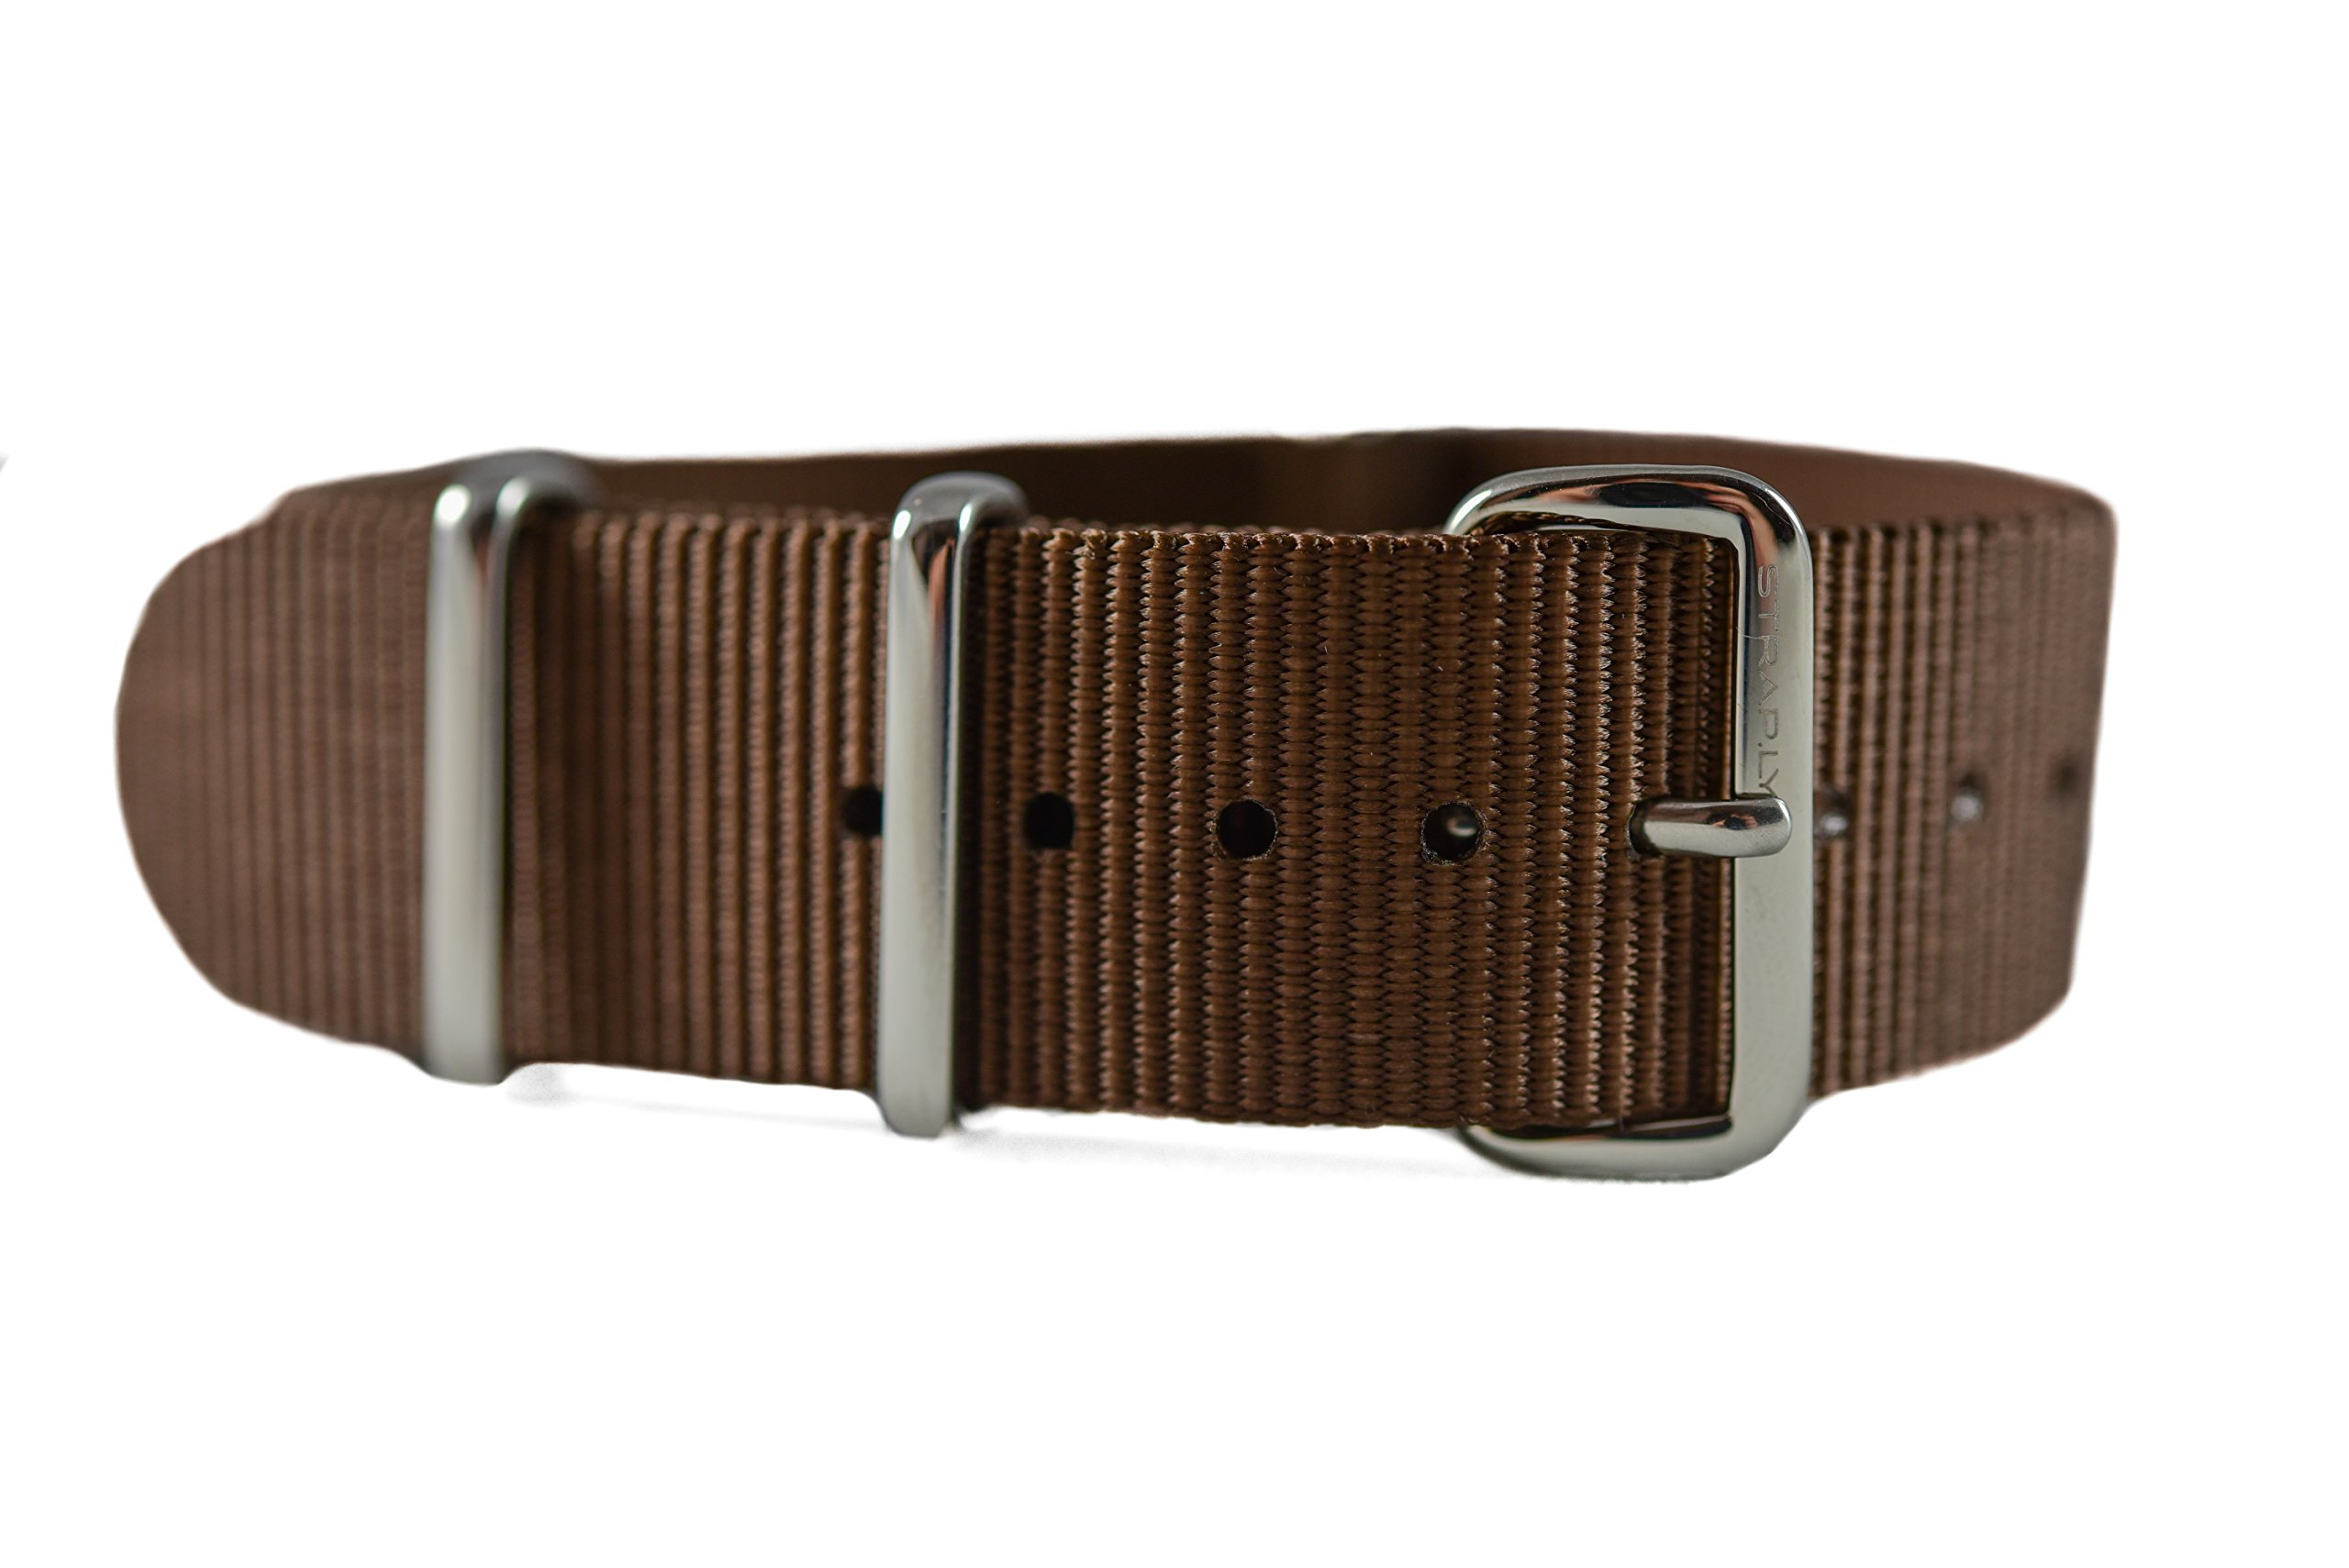 NATO G10 Nylon Premium Quality Replacement Watch Band Strap - 20mm / Brown - FITS ALL BRAND WATCHES